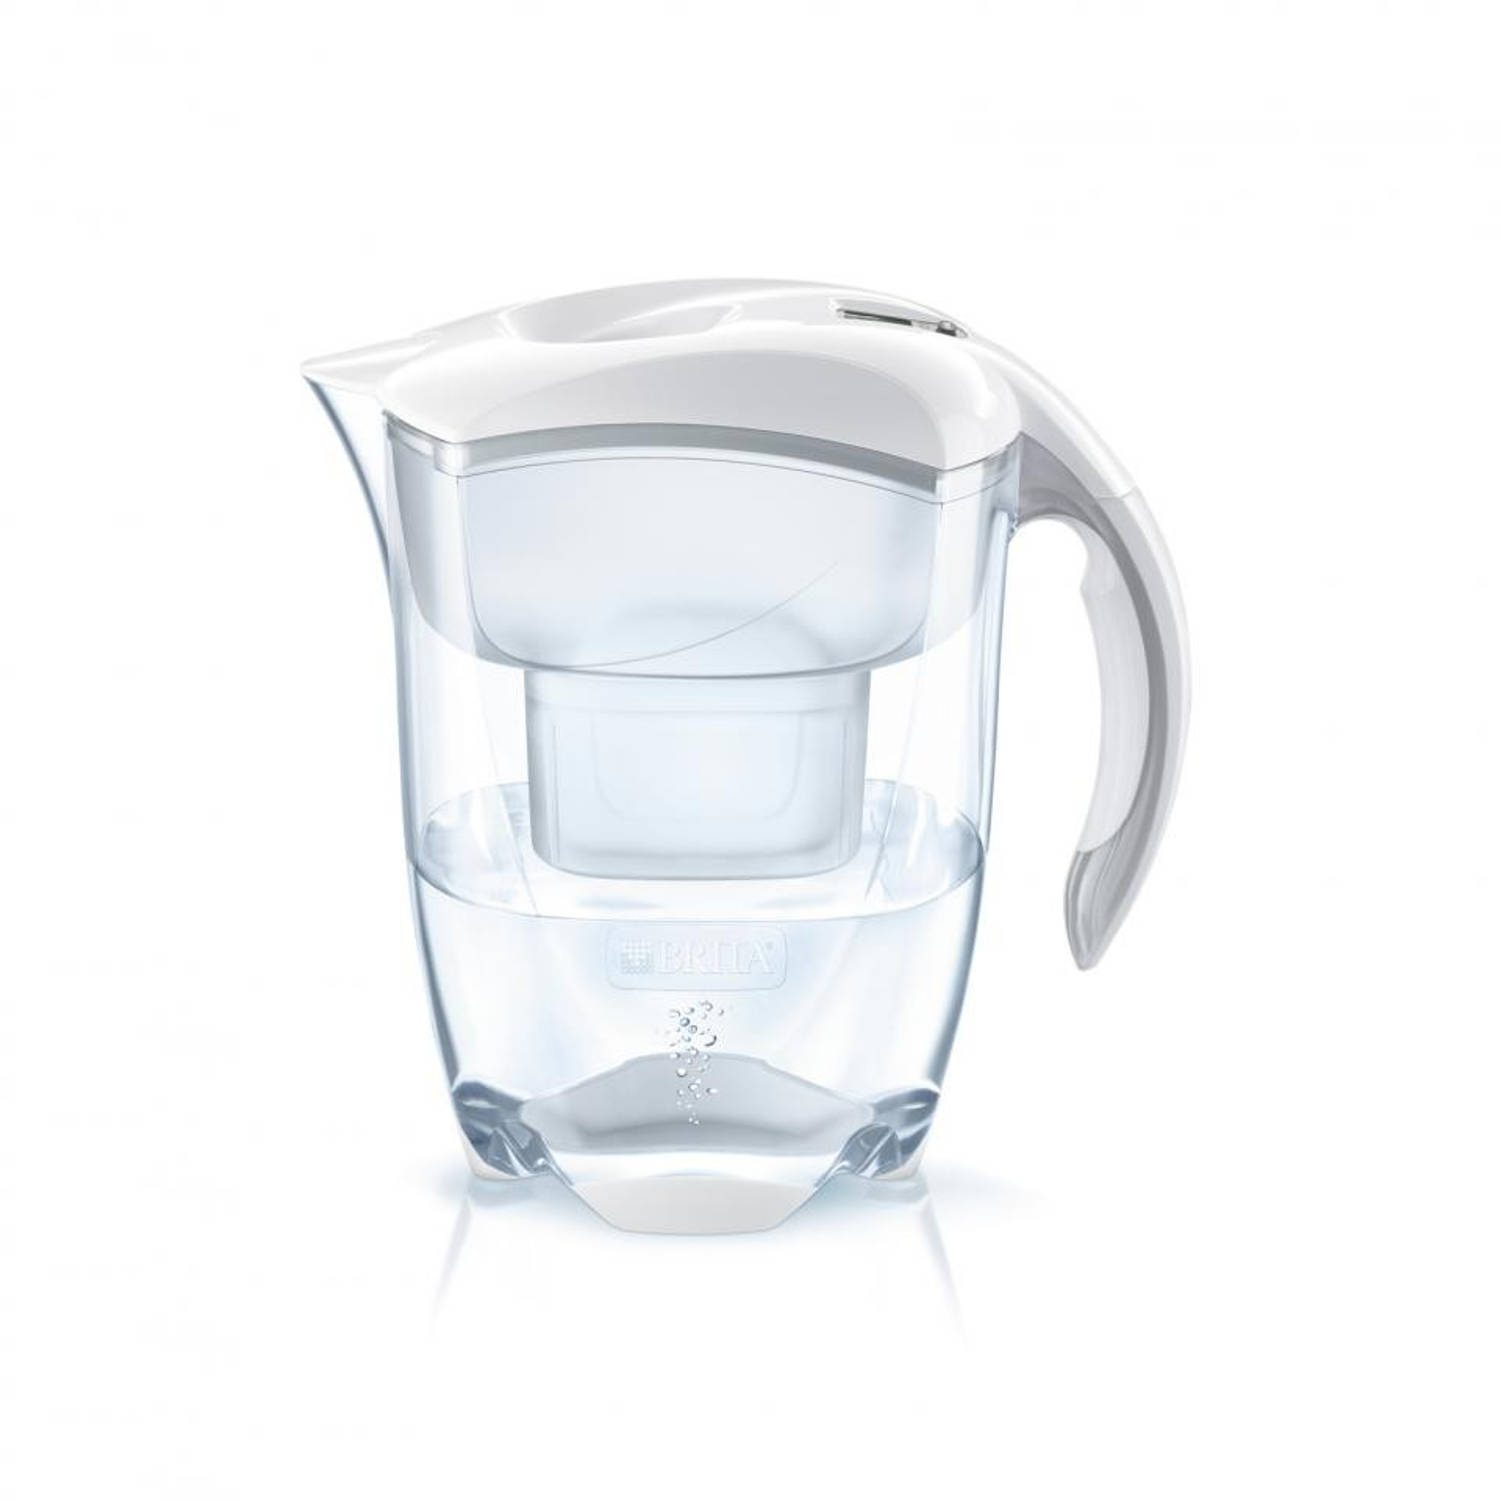 Korting Brita fill en enjoy Elemaris xl white